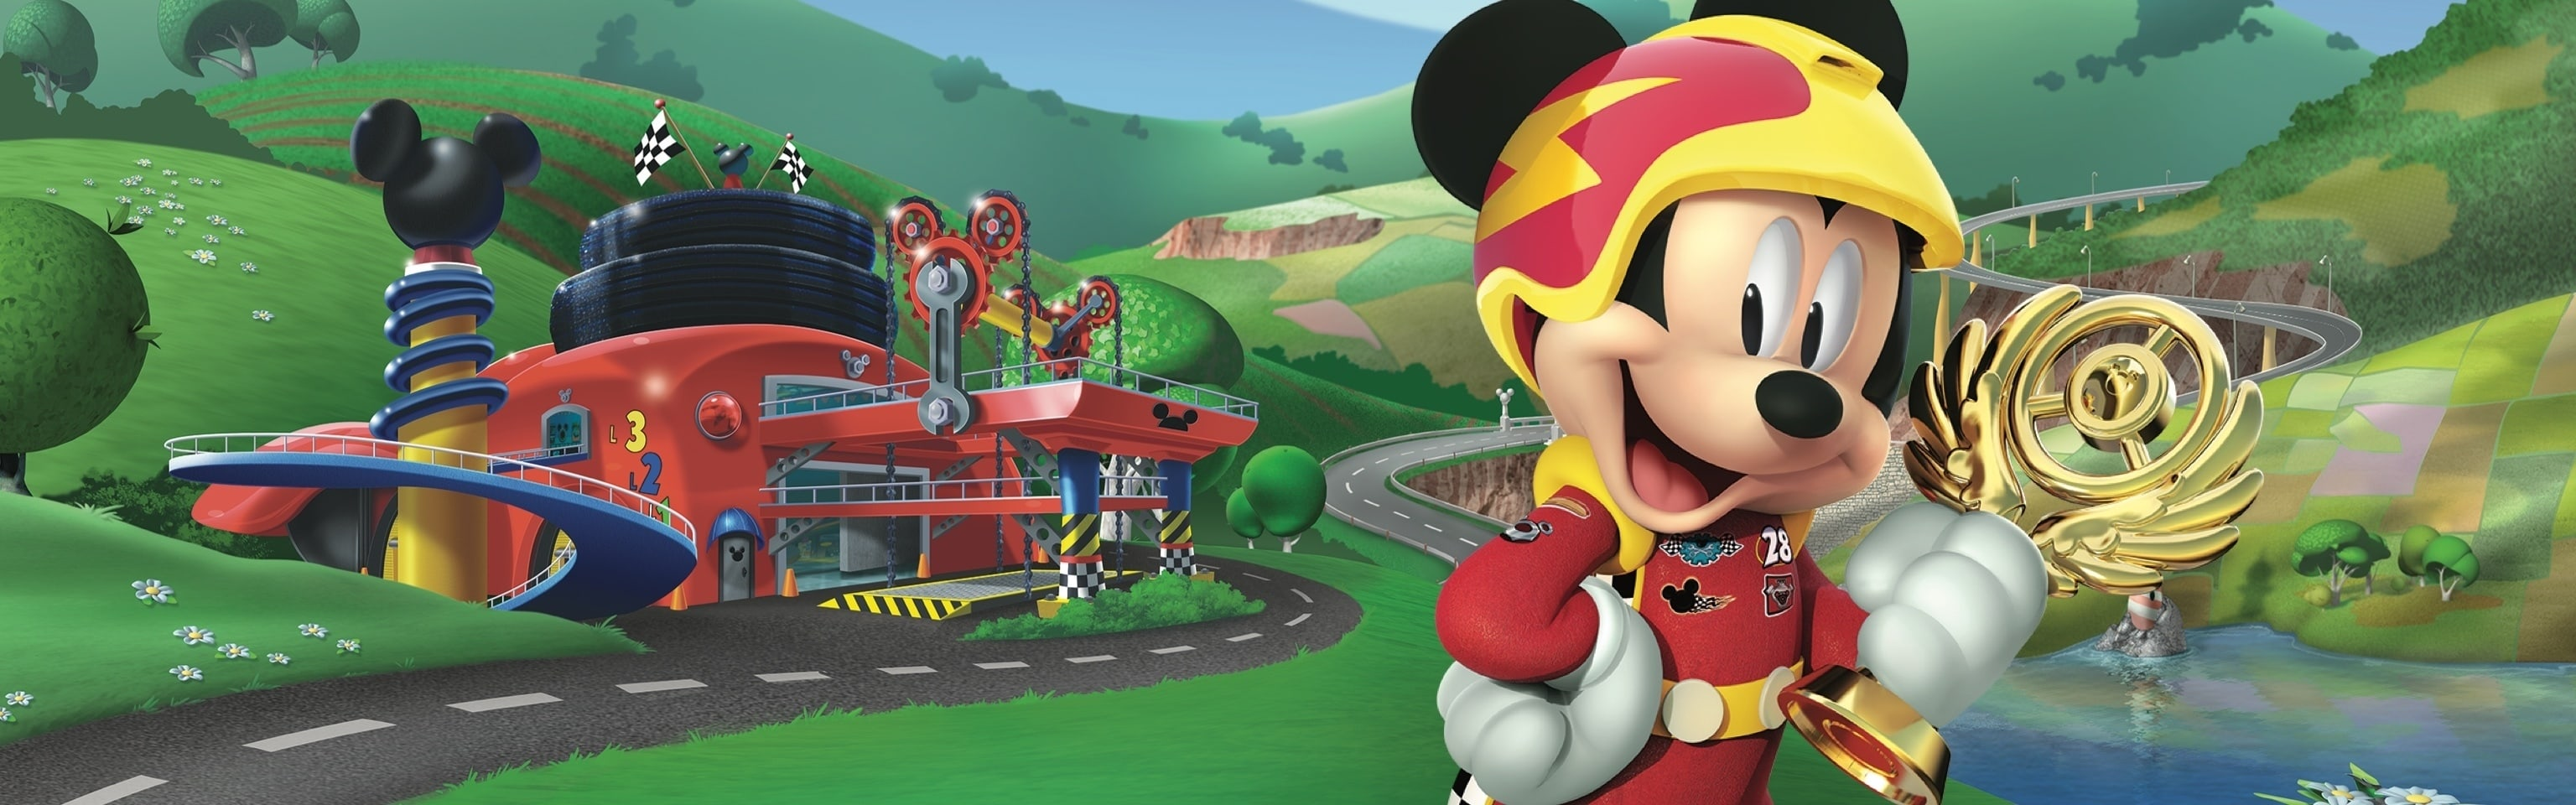 Mickey Roadster Racers - Homepage Hero